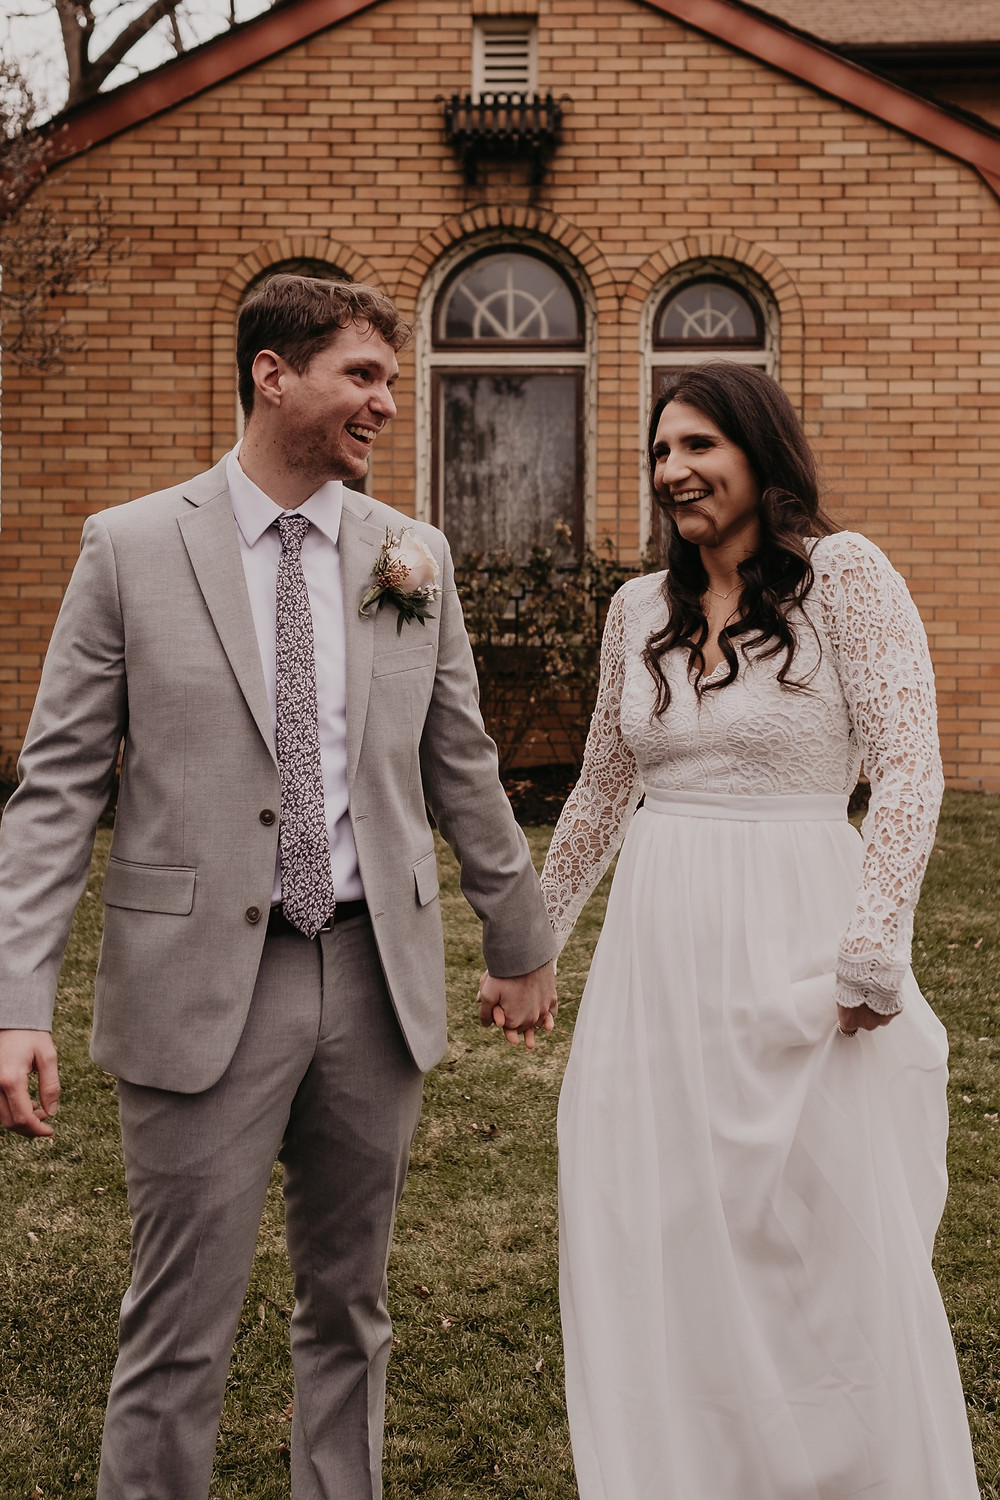 Married couple at Victoria Wedding Chapel in Metro Detroit. Photographed by Detroit wedding photographer Nicole Leanne Photography